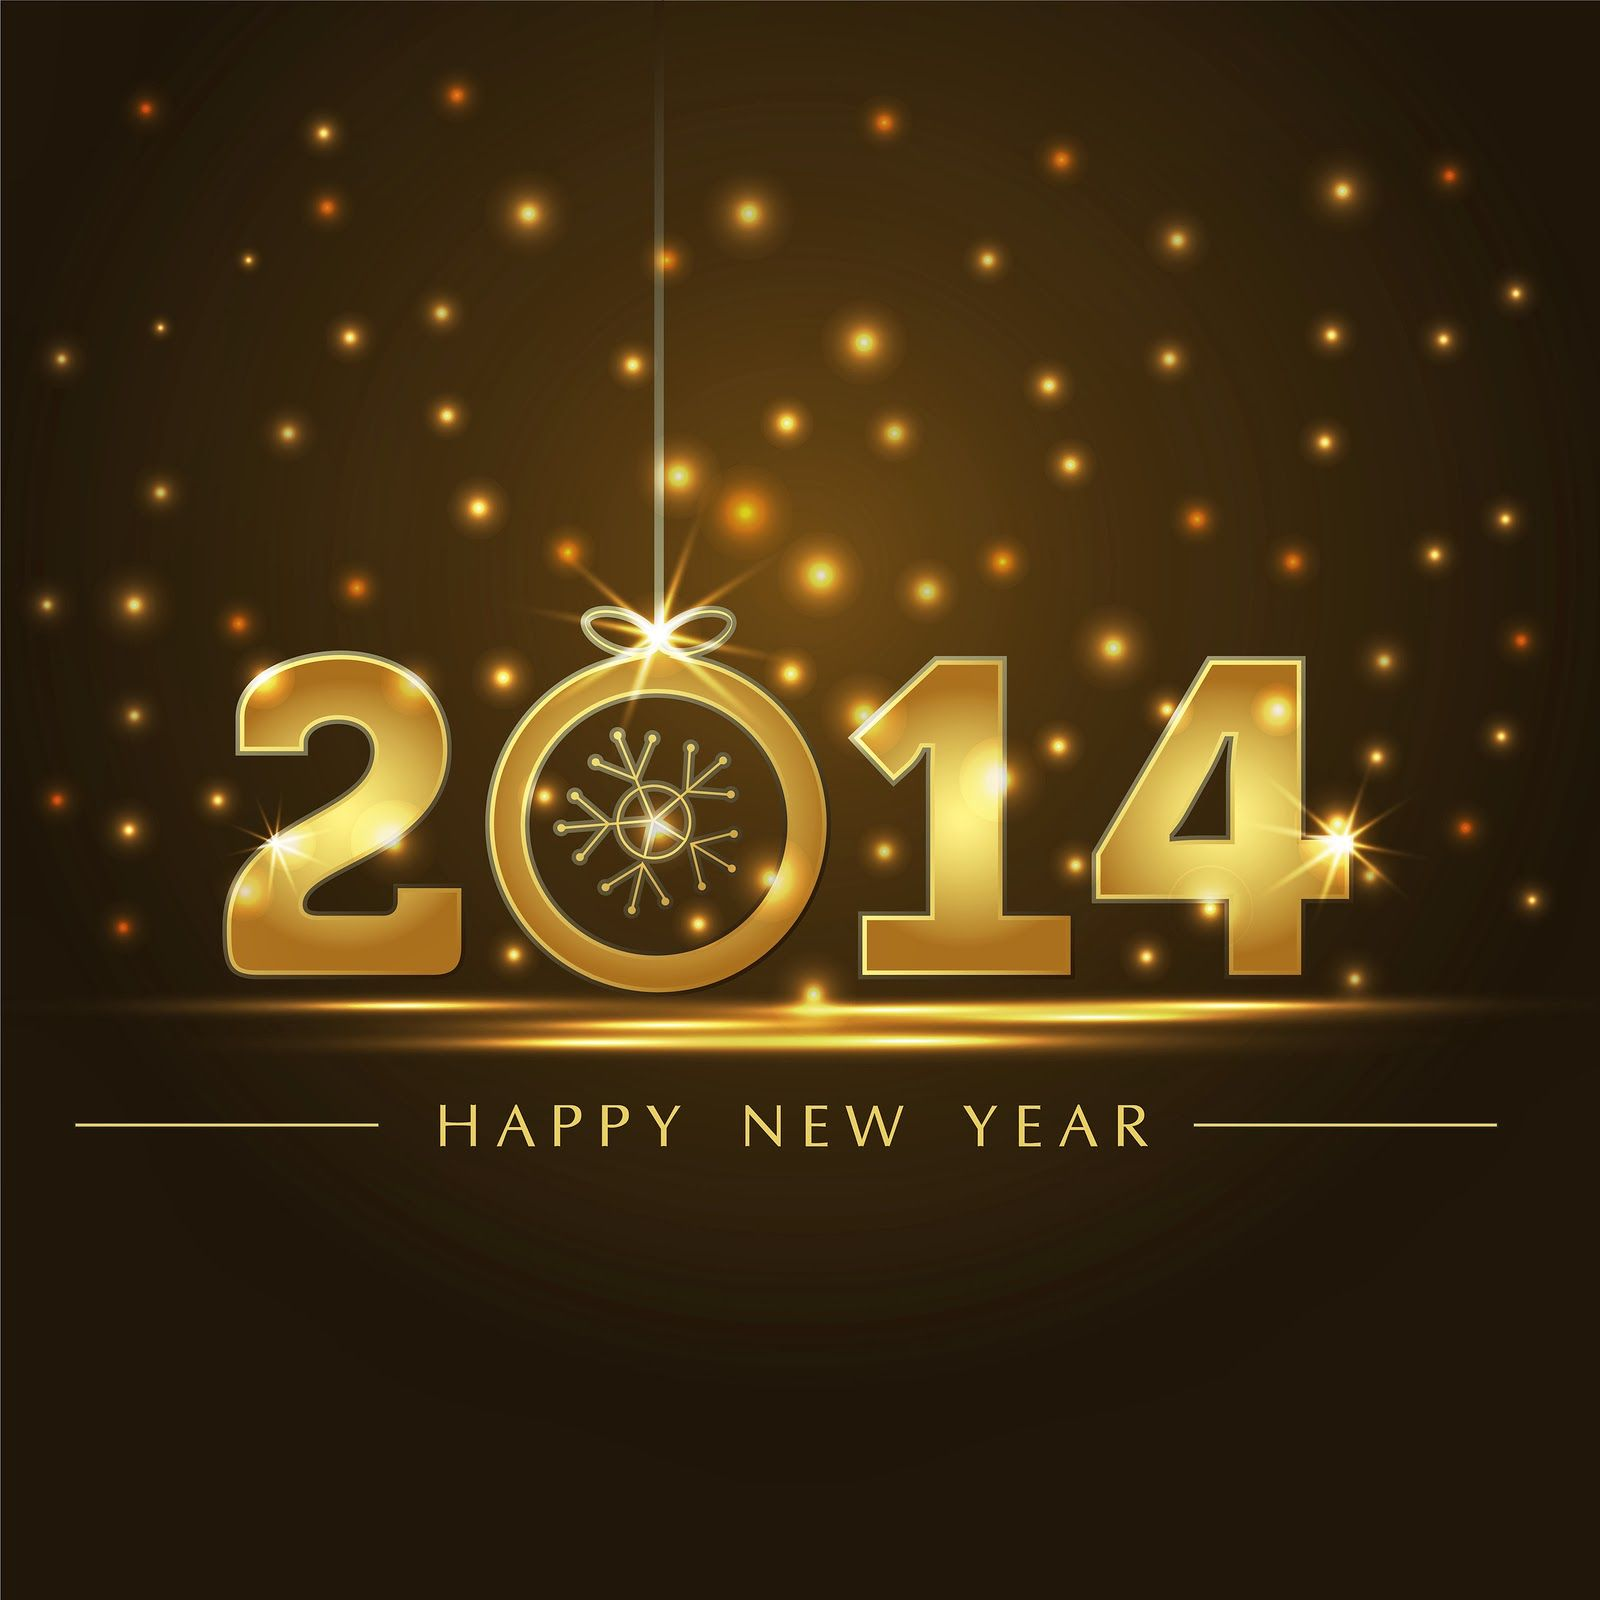 happy new year 2014 wishes greetings messageswallpapers new year wallpapers 2014